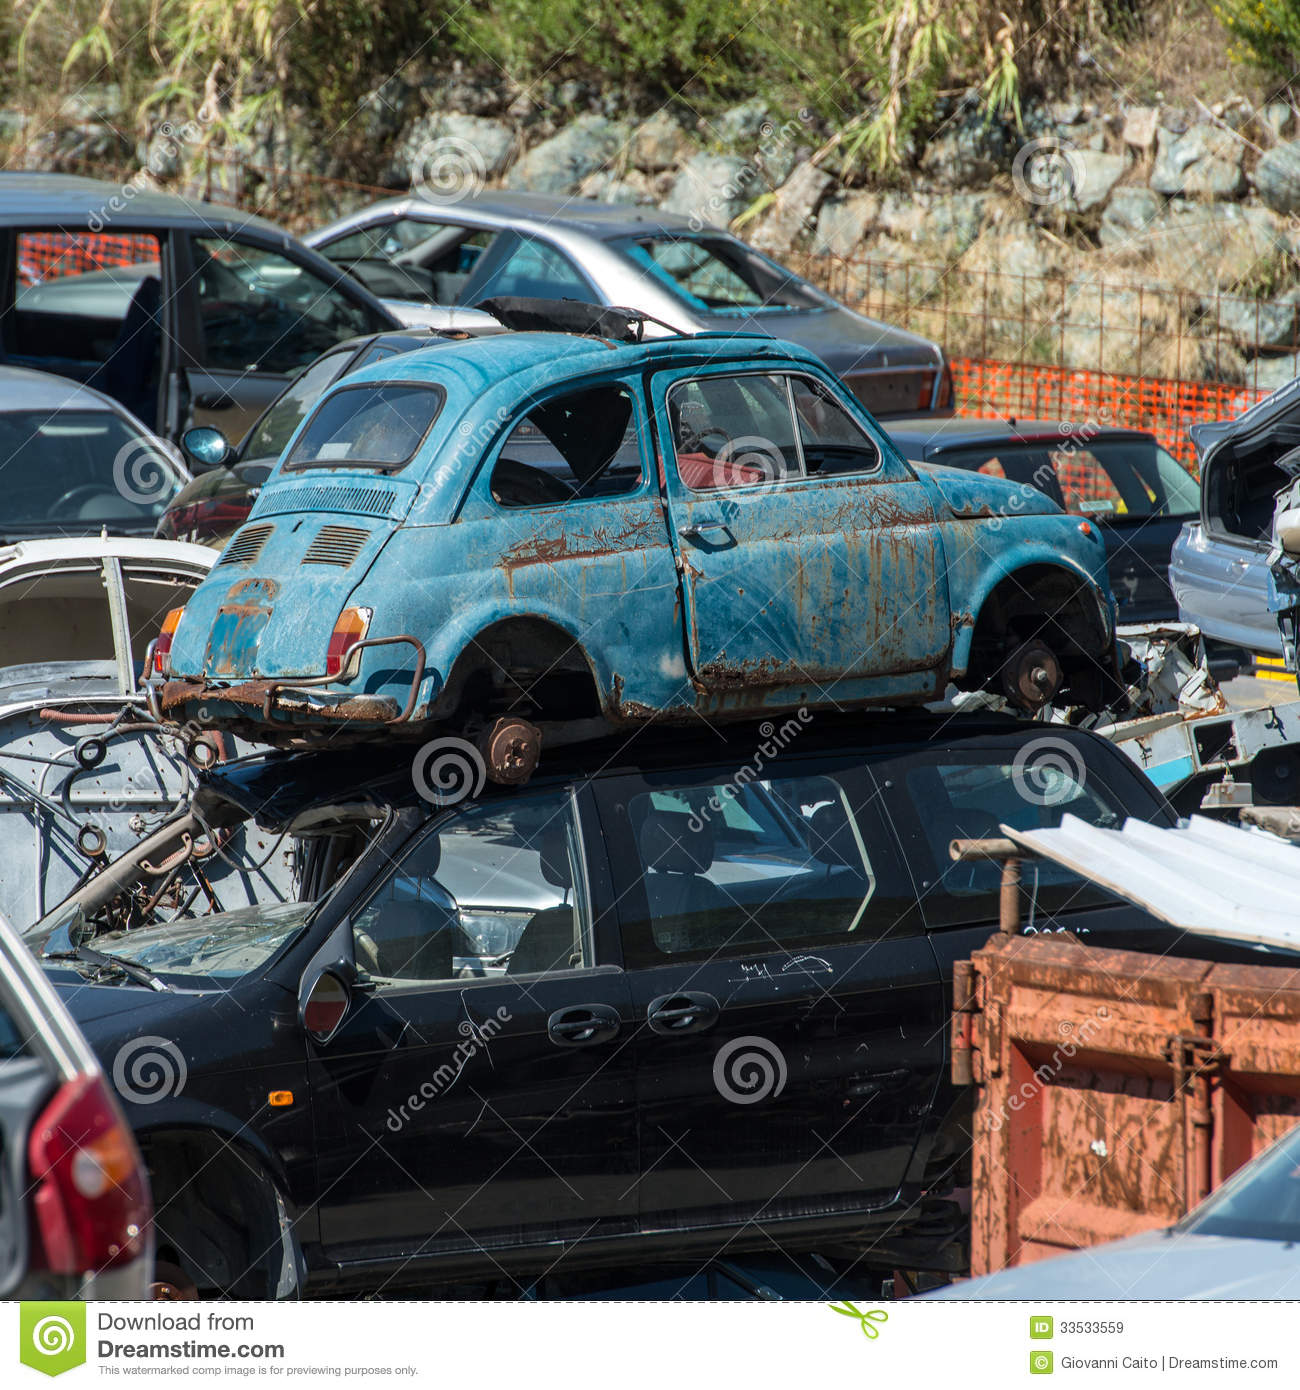 Old Cars In The Junkyard Stock Image. Image Of Junk, Spare